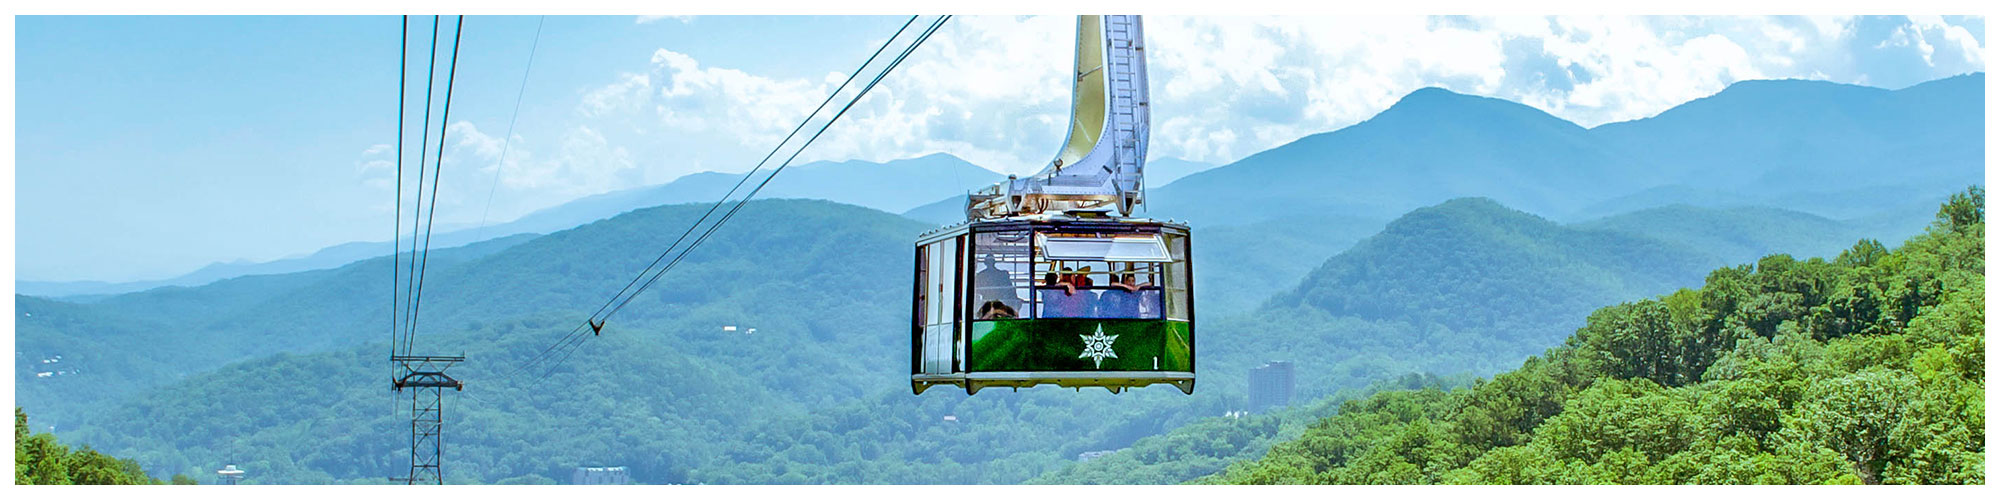 Ober Gatlinburg (Header Background) | Gatlinburg Attractions